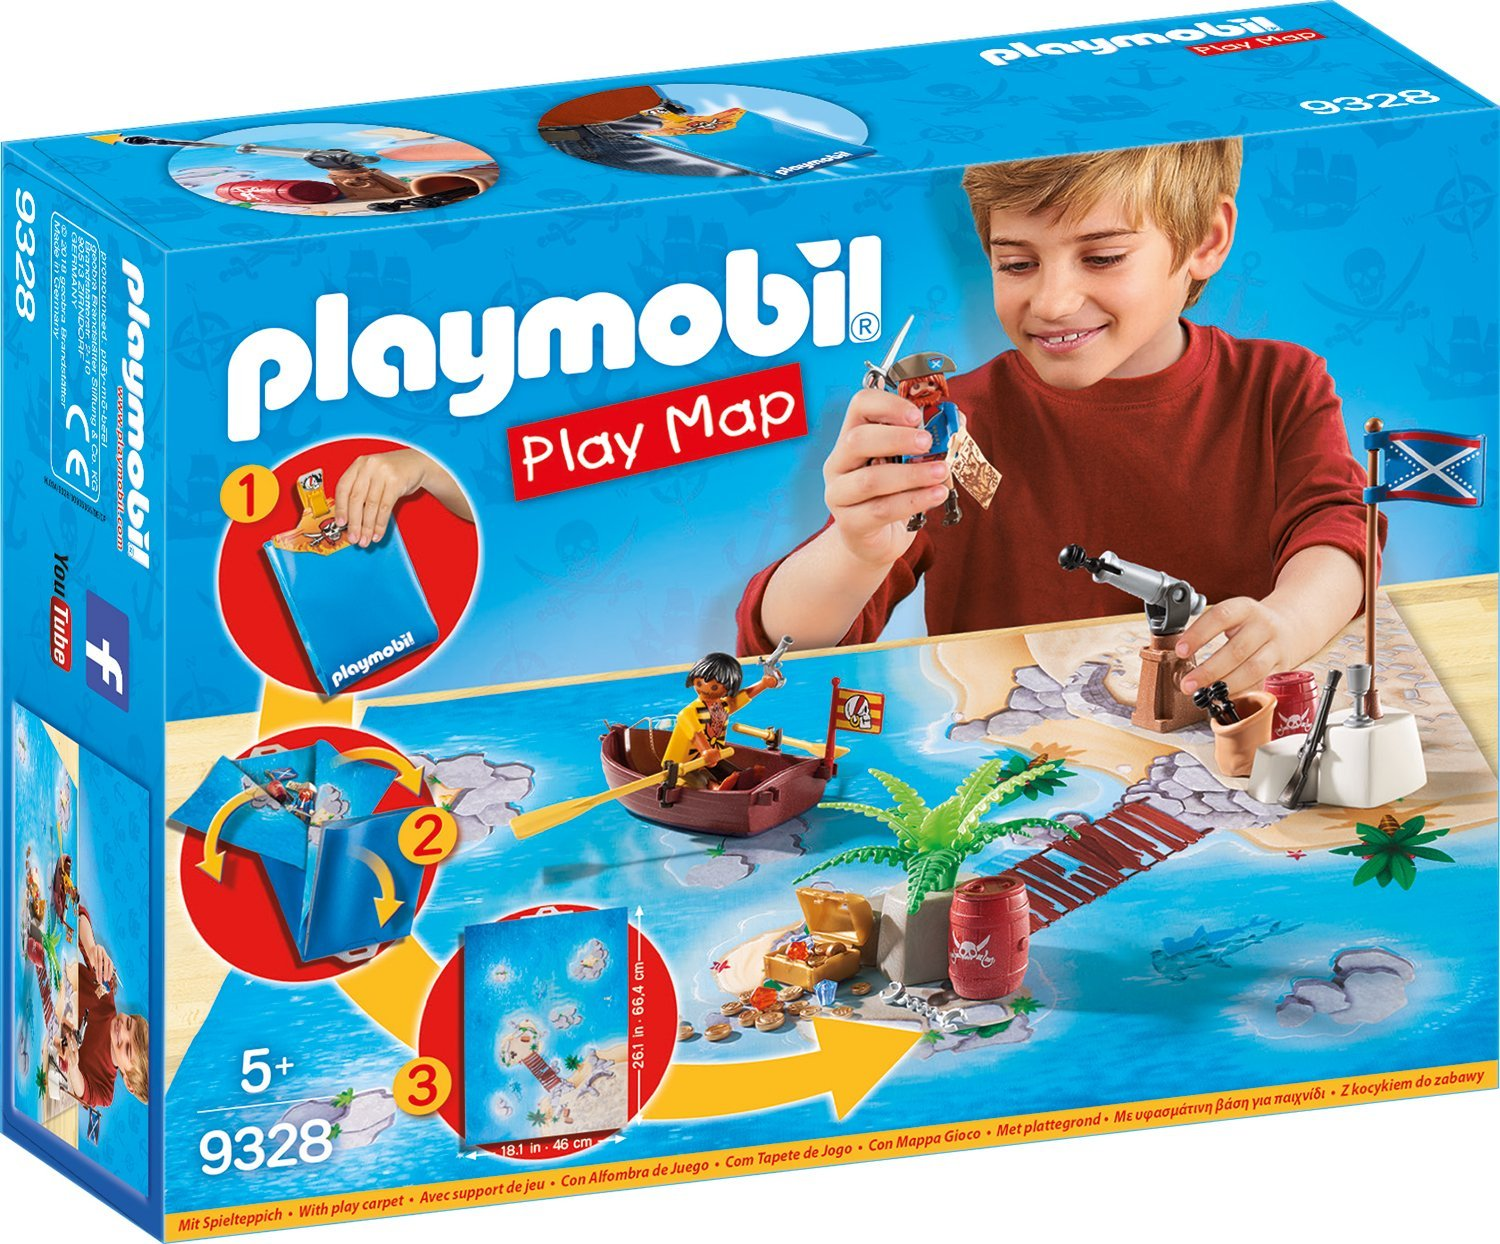 Playmobil 9328 - Playmap Piraten